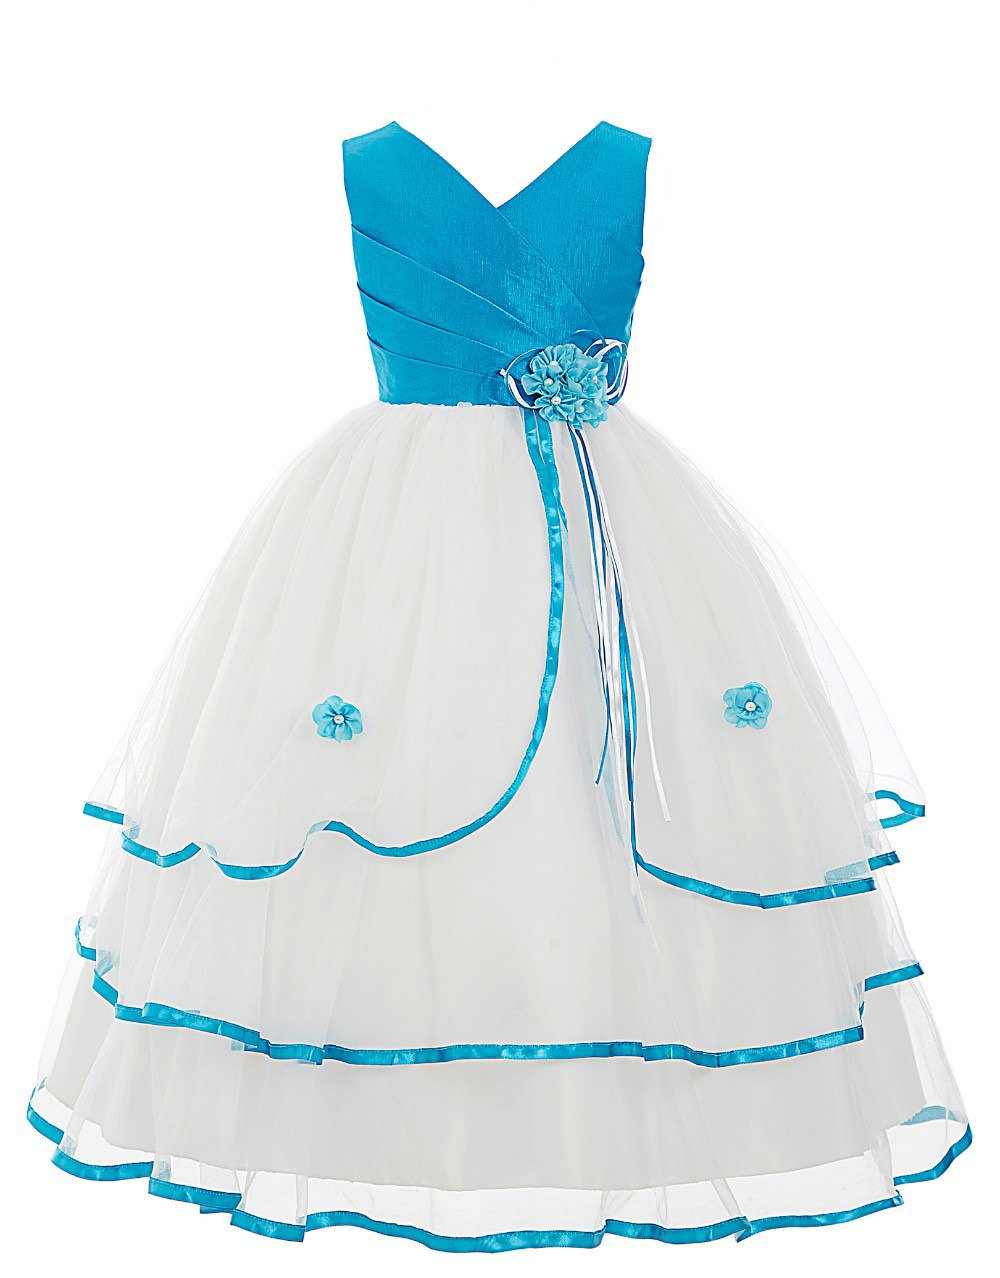 2dcea37e15cfc SOFYANA Baby – Girl's Satin Princess Gown Birthday Party Wear Long Frock  Dress for Girls_White and Sky Blue_129_5-6 Years Kidswear